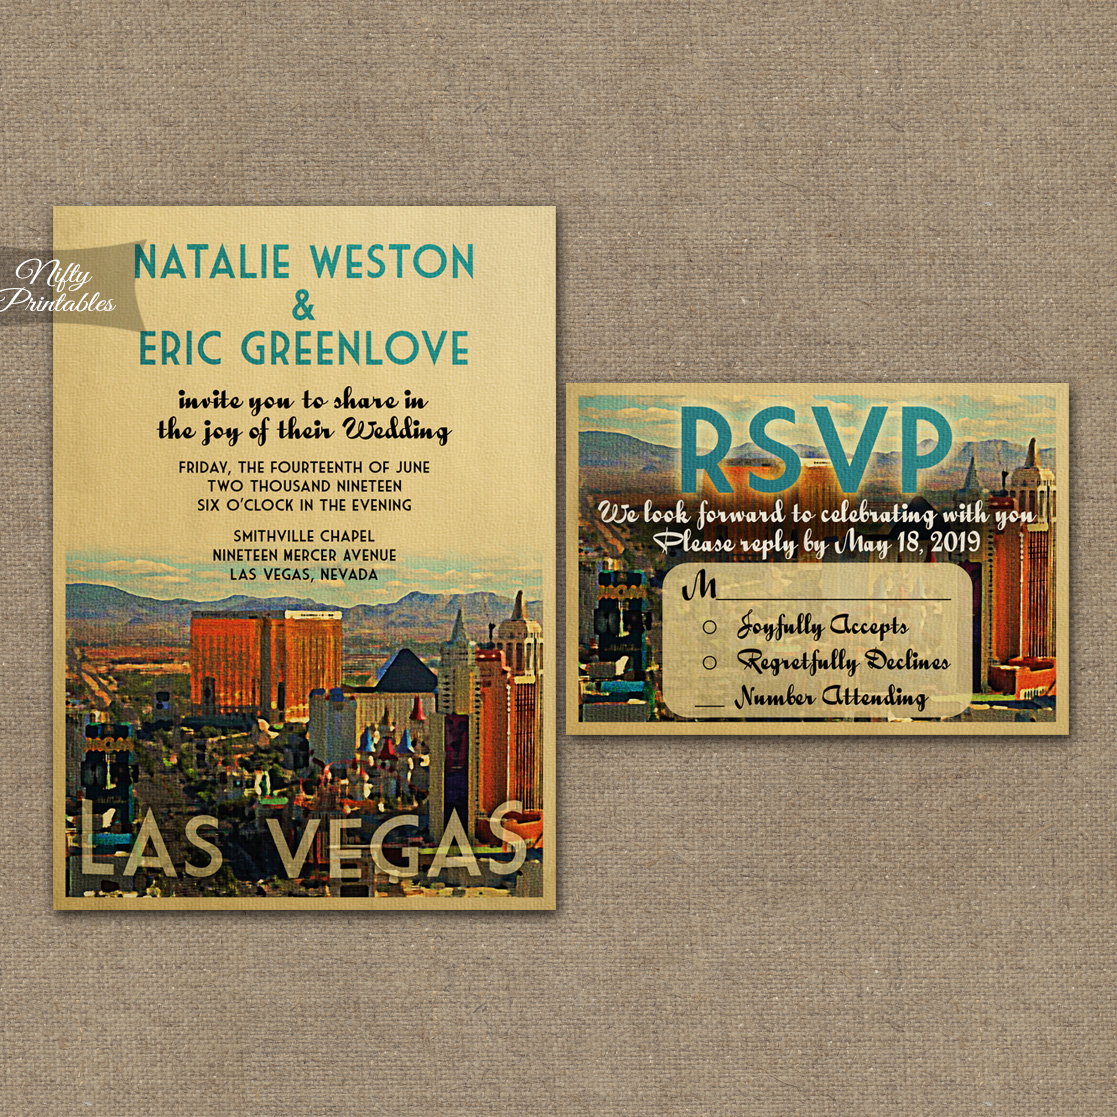 Las Vegas Wedding Invitations VTW